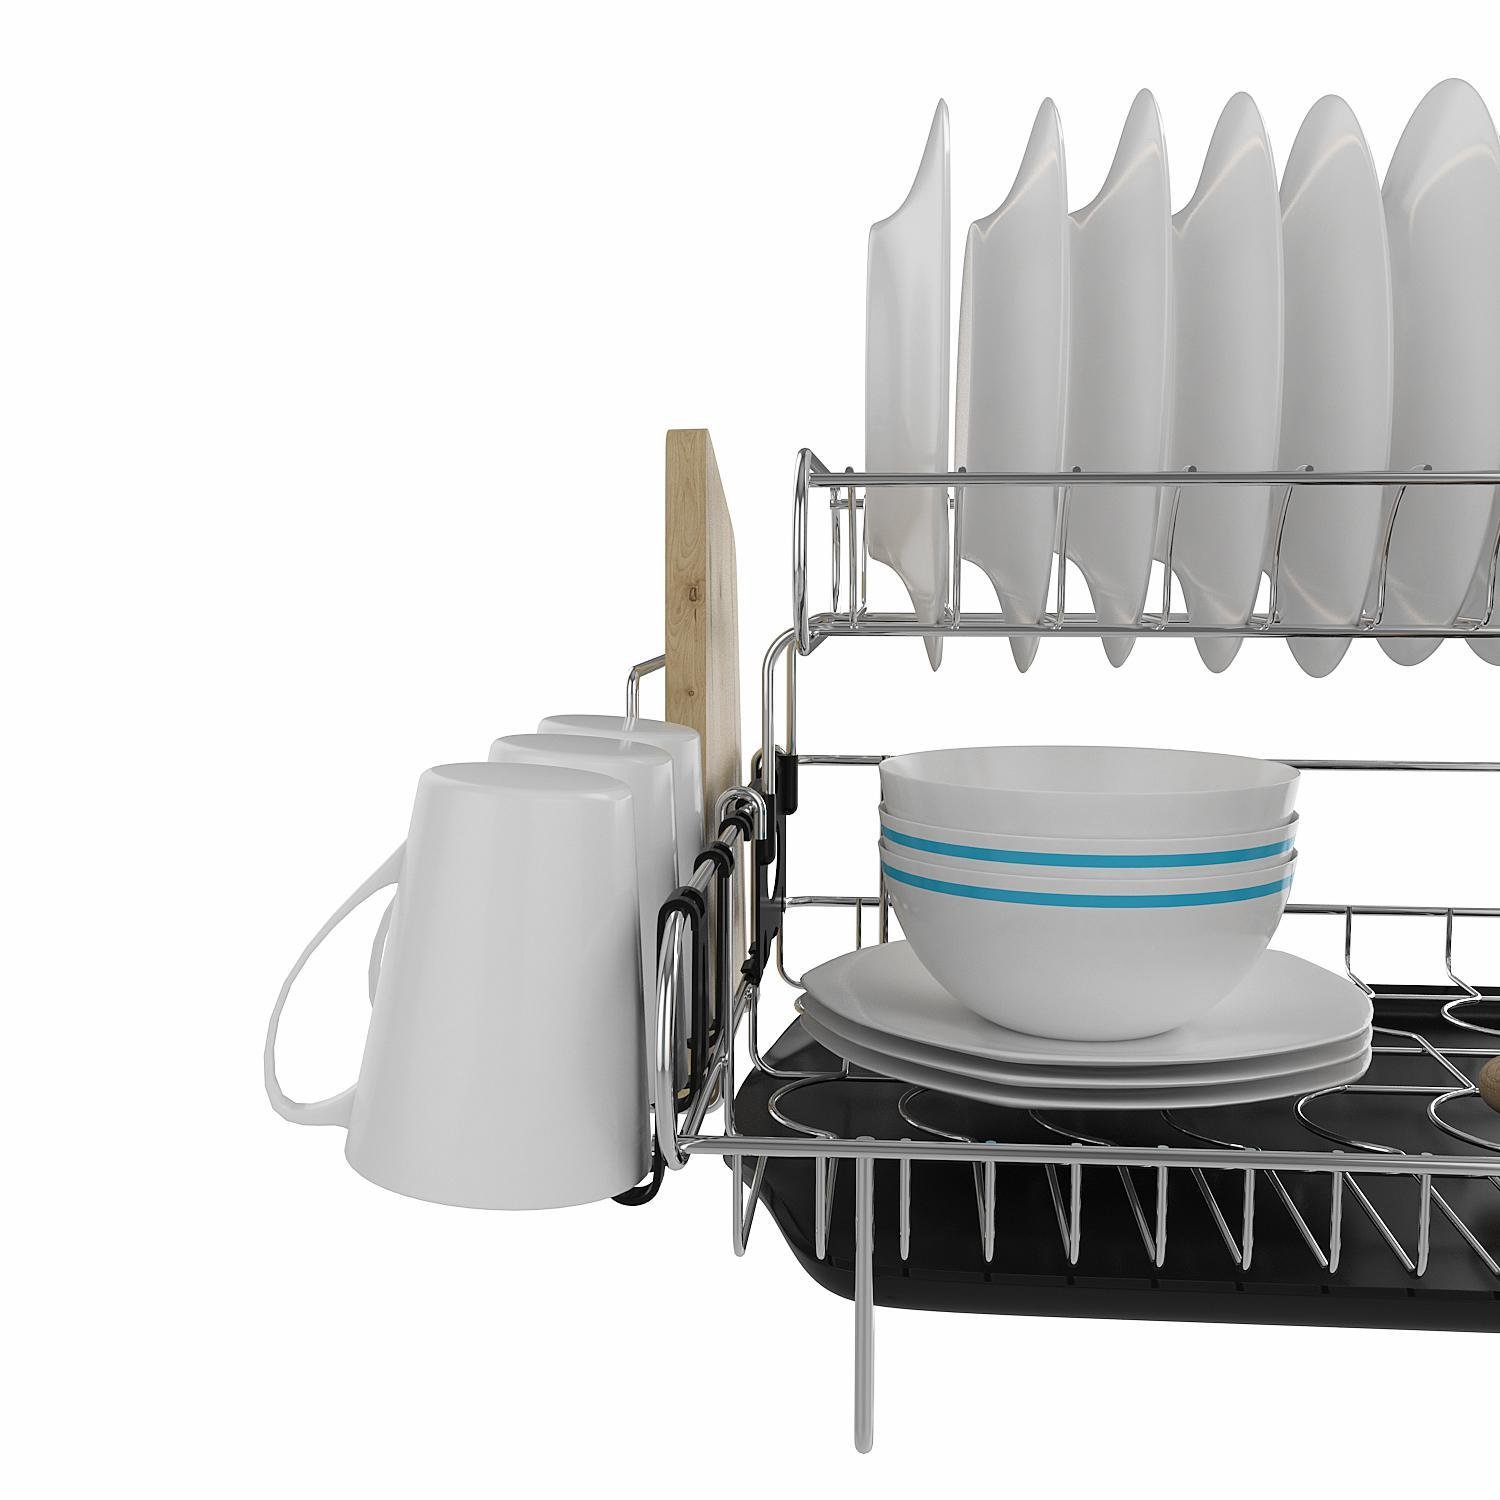 Mewalker 2 Tier Dish Drying Rack 304 Stainless Steel Professional Dish Rack with Microfiber Mat Drain Board and Cutlery Holder, Black by Mewalker (Image #6)